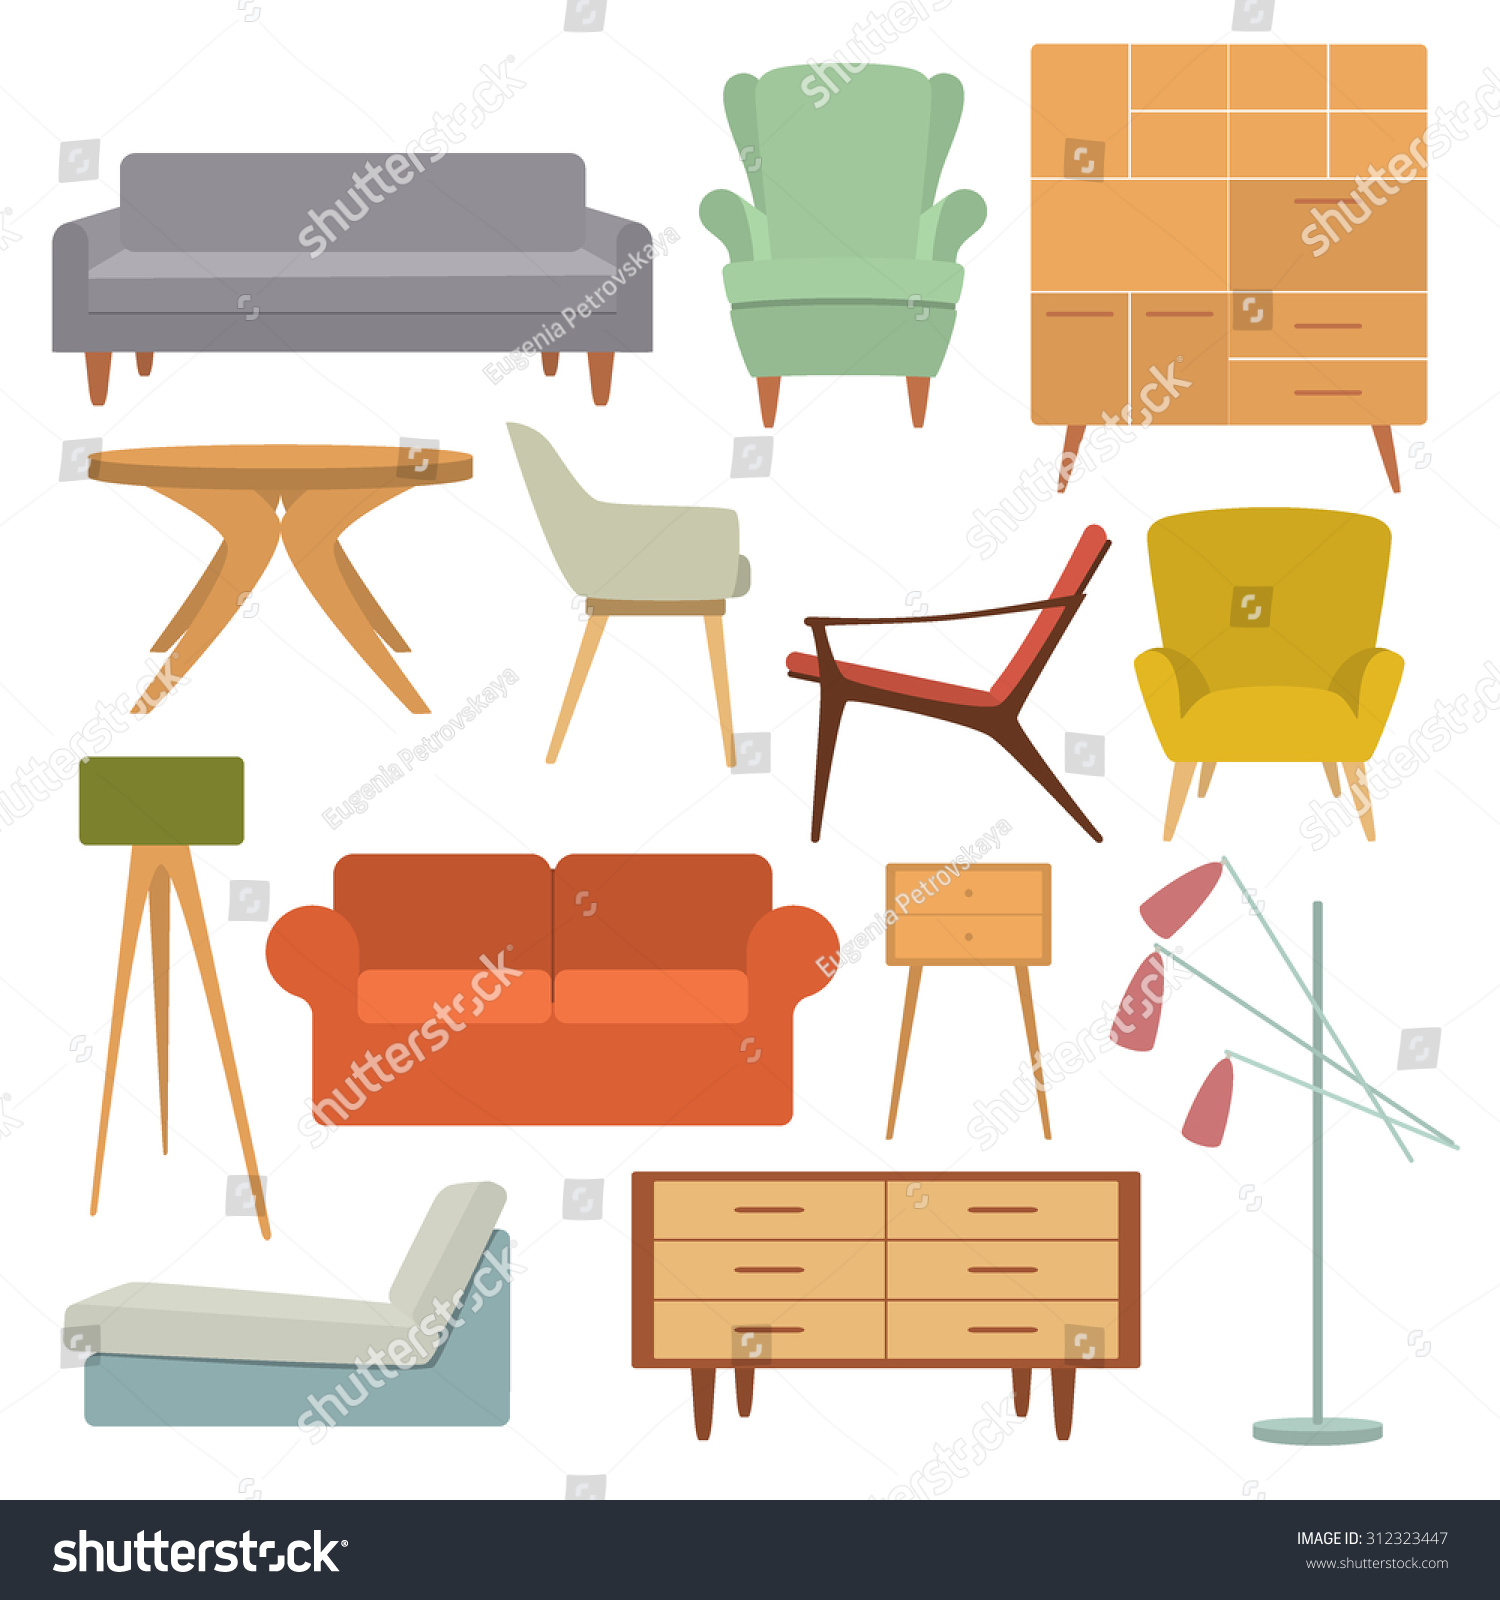 Mid Century Modern Furniture Design: Vector Illustration Of Living Room Furniture In Mid